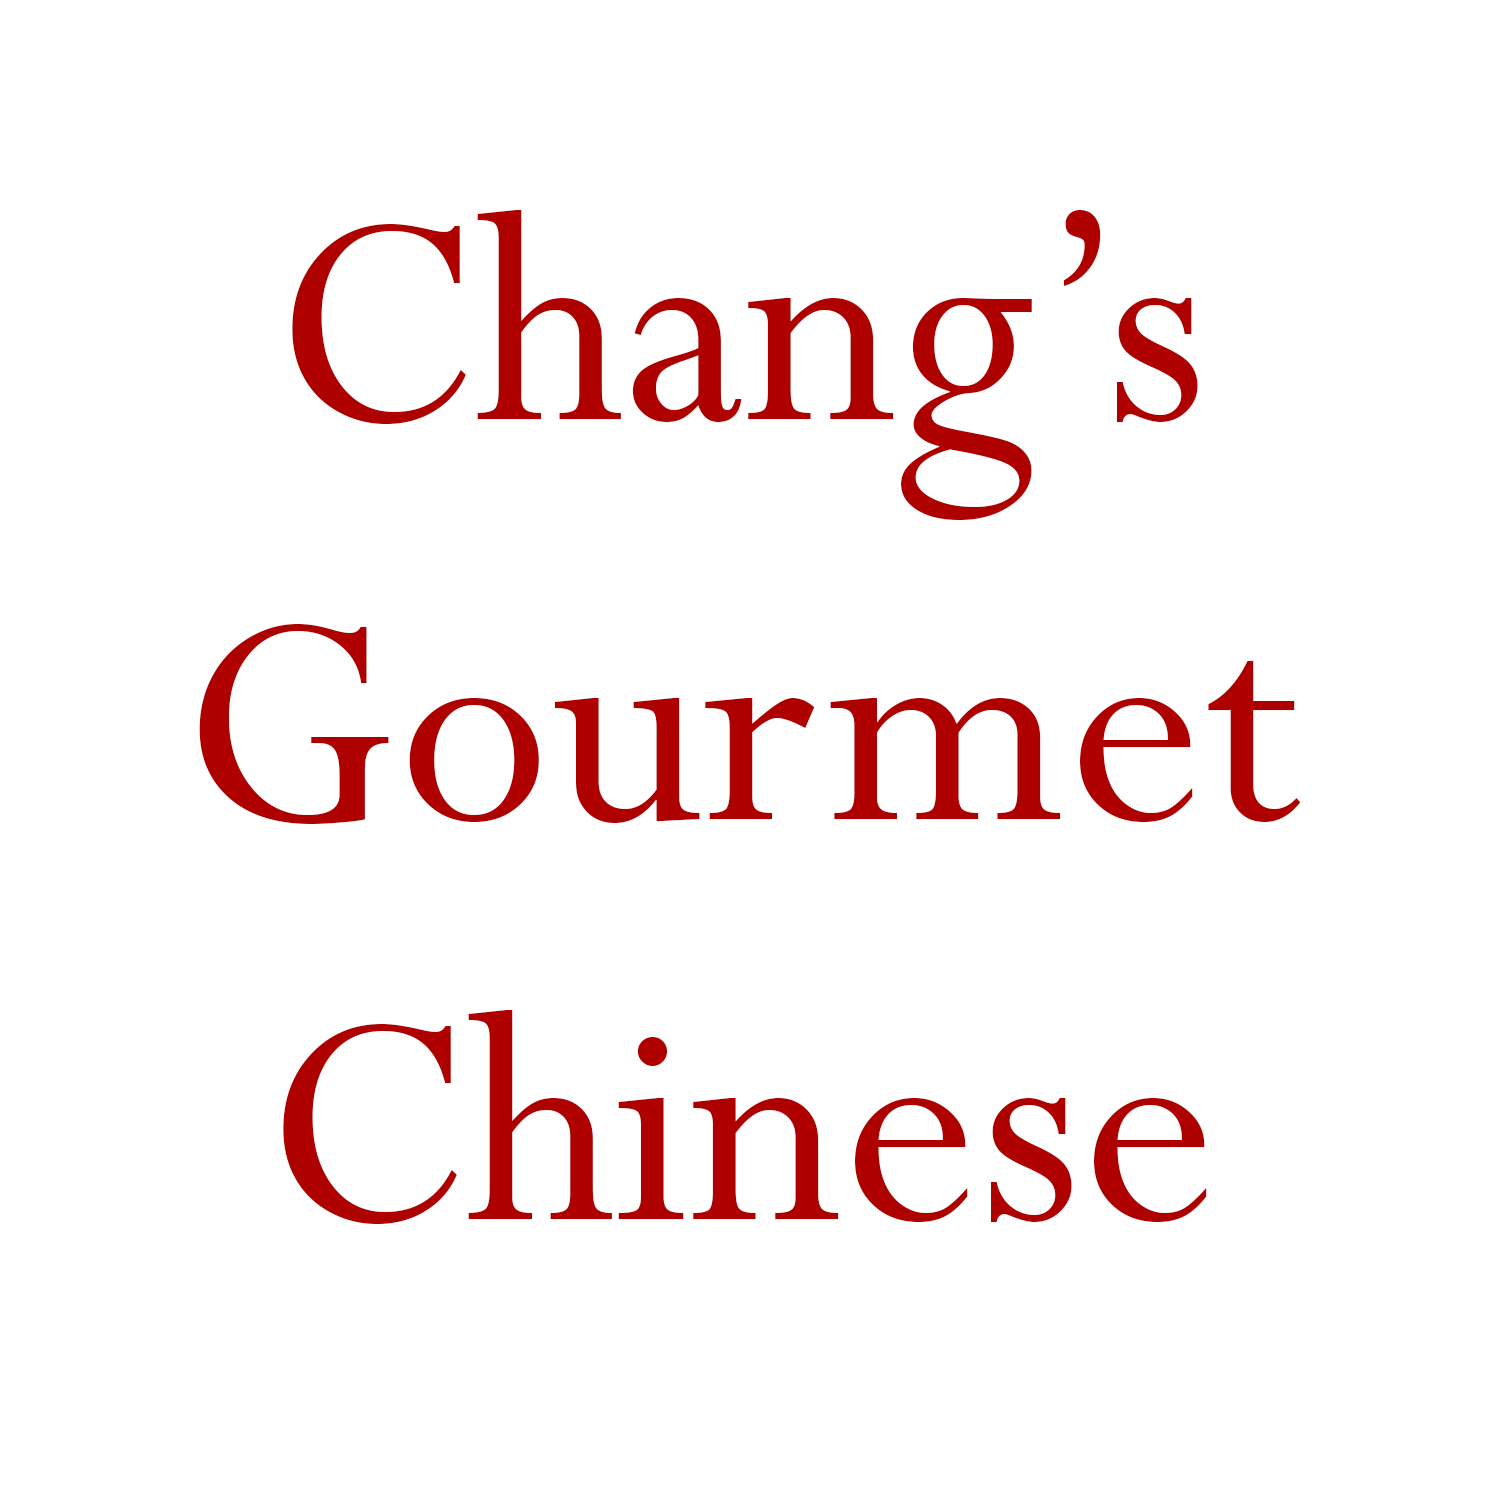 Changs Gourmet Chinese